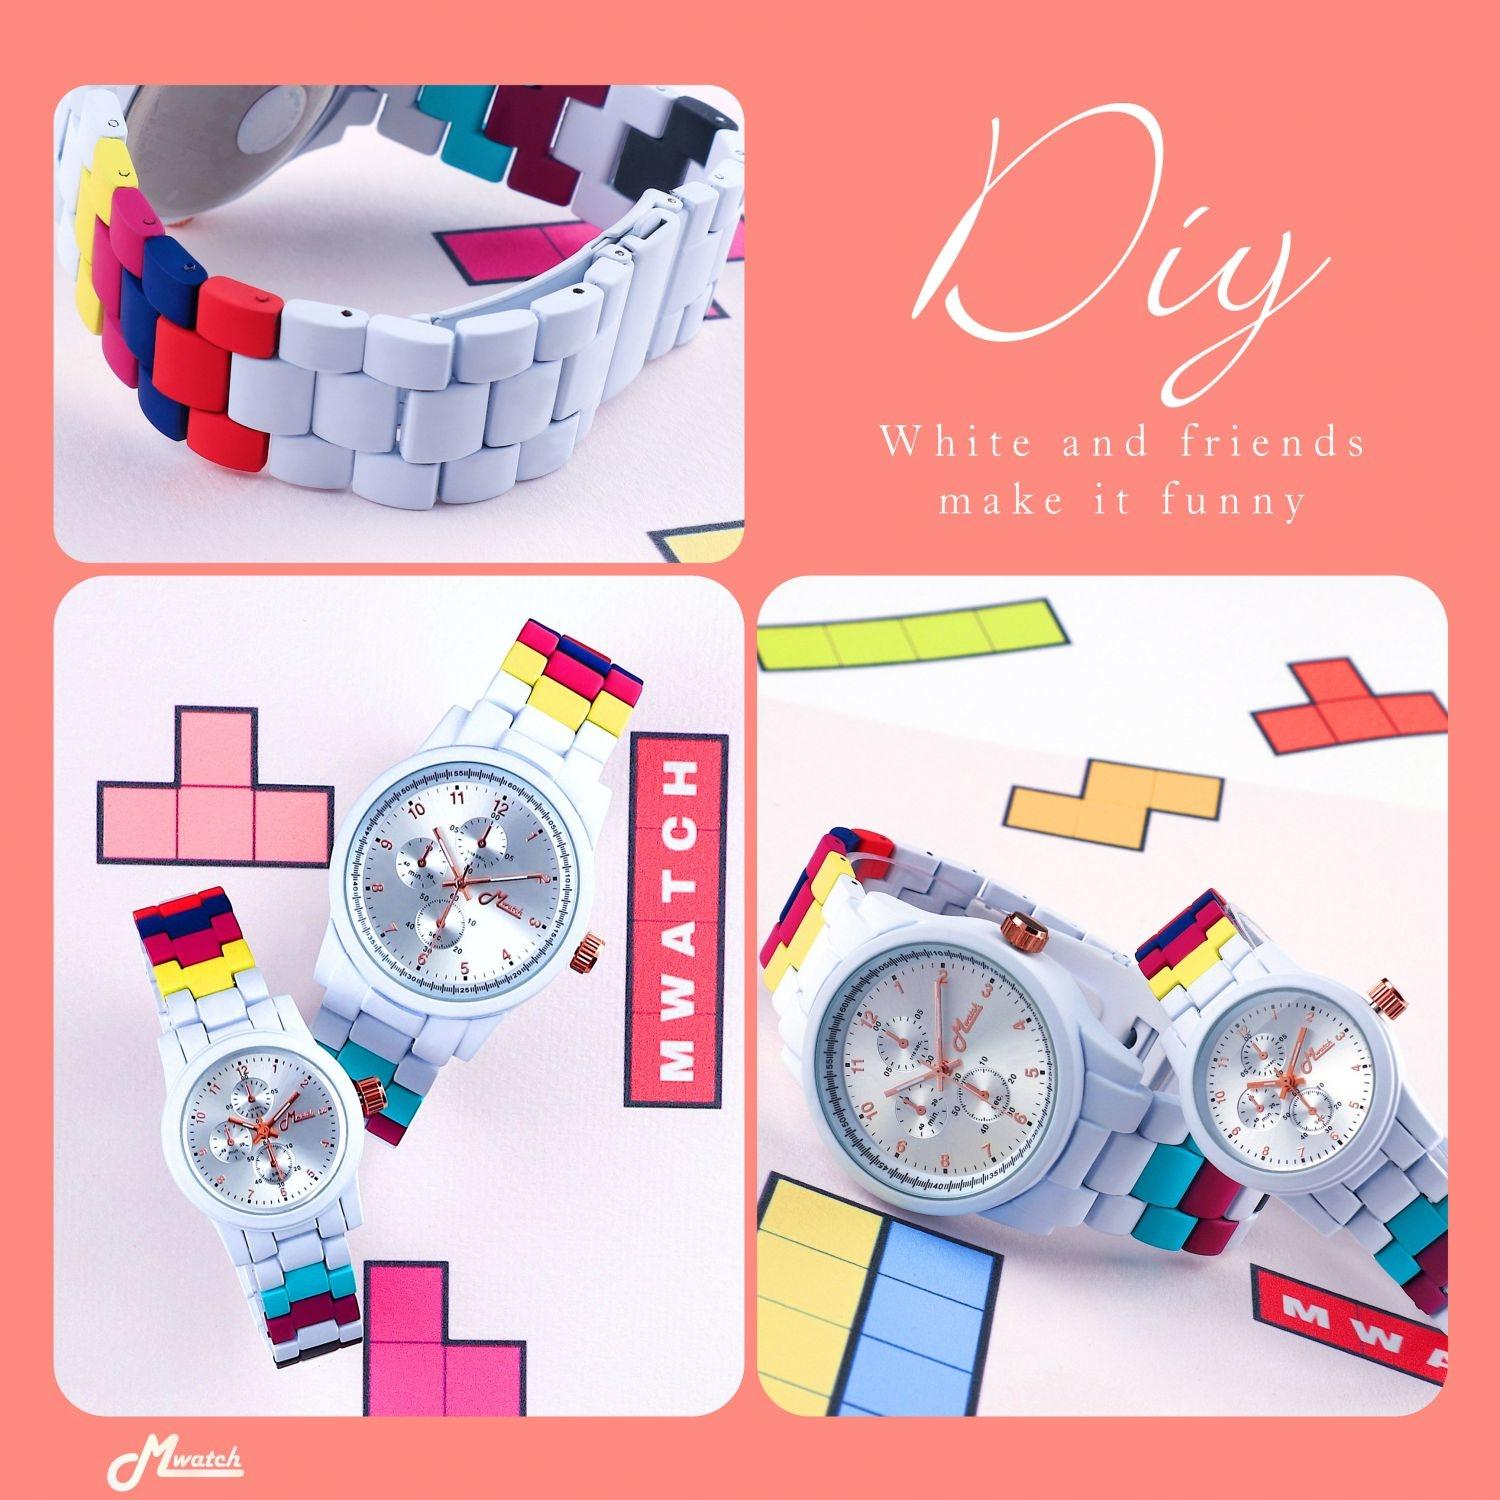 Mwatch 365 series White D.I.Y couple watch นาฬิกาสลับสี